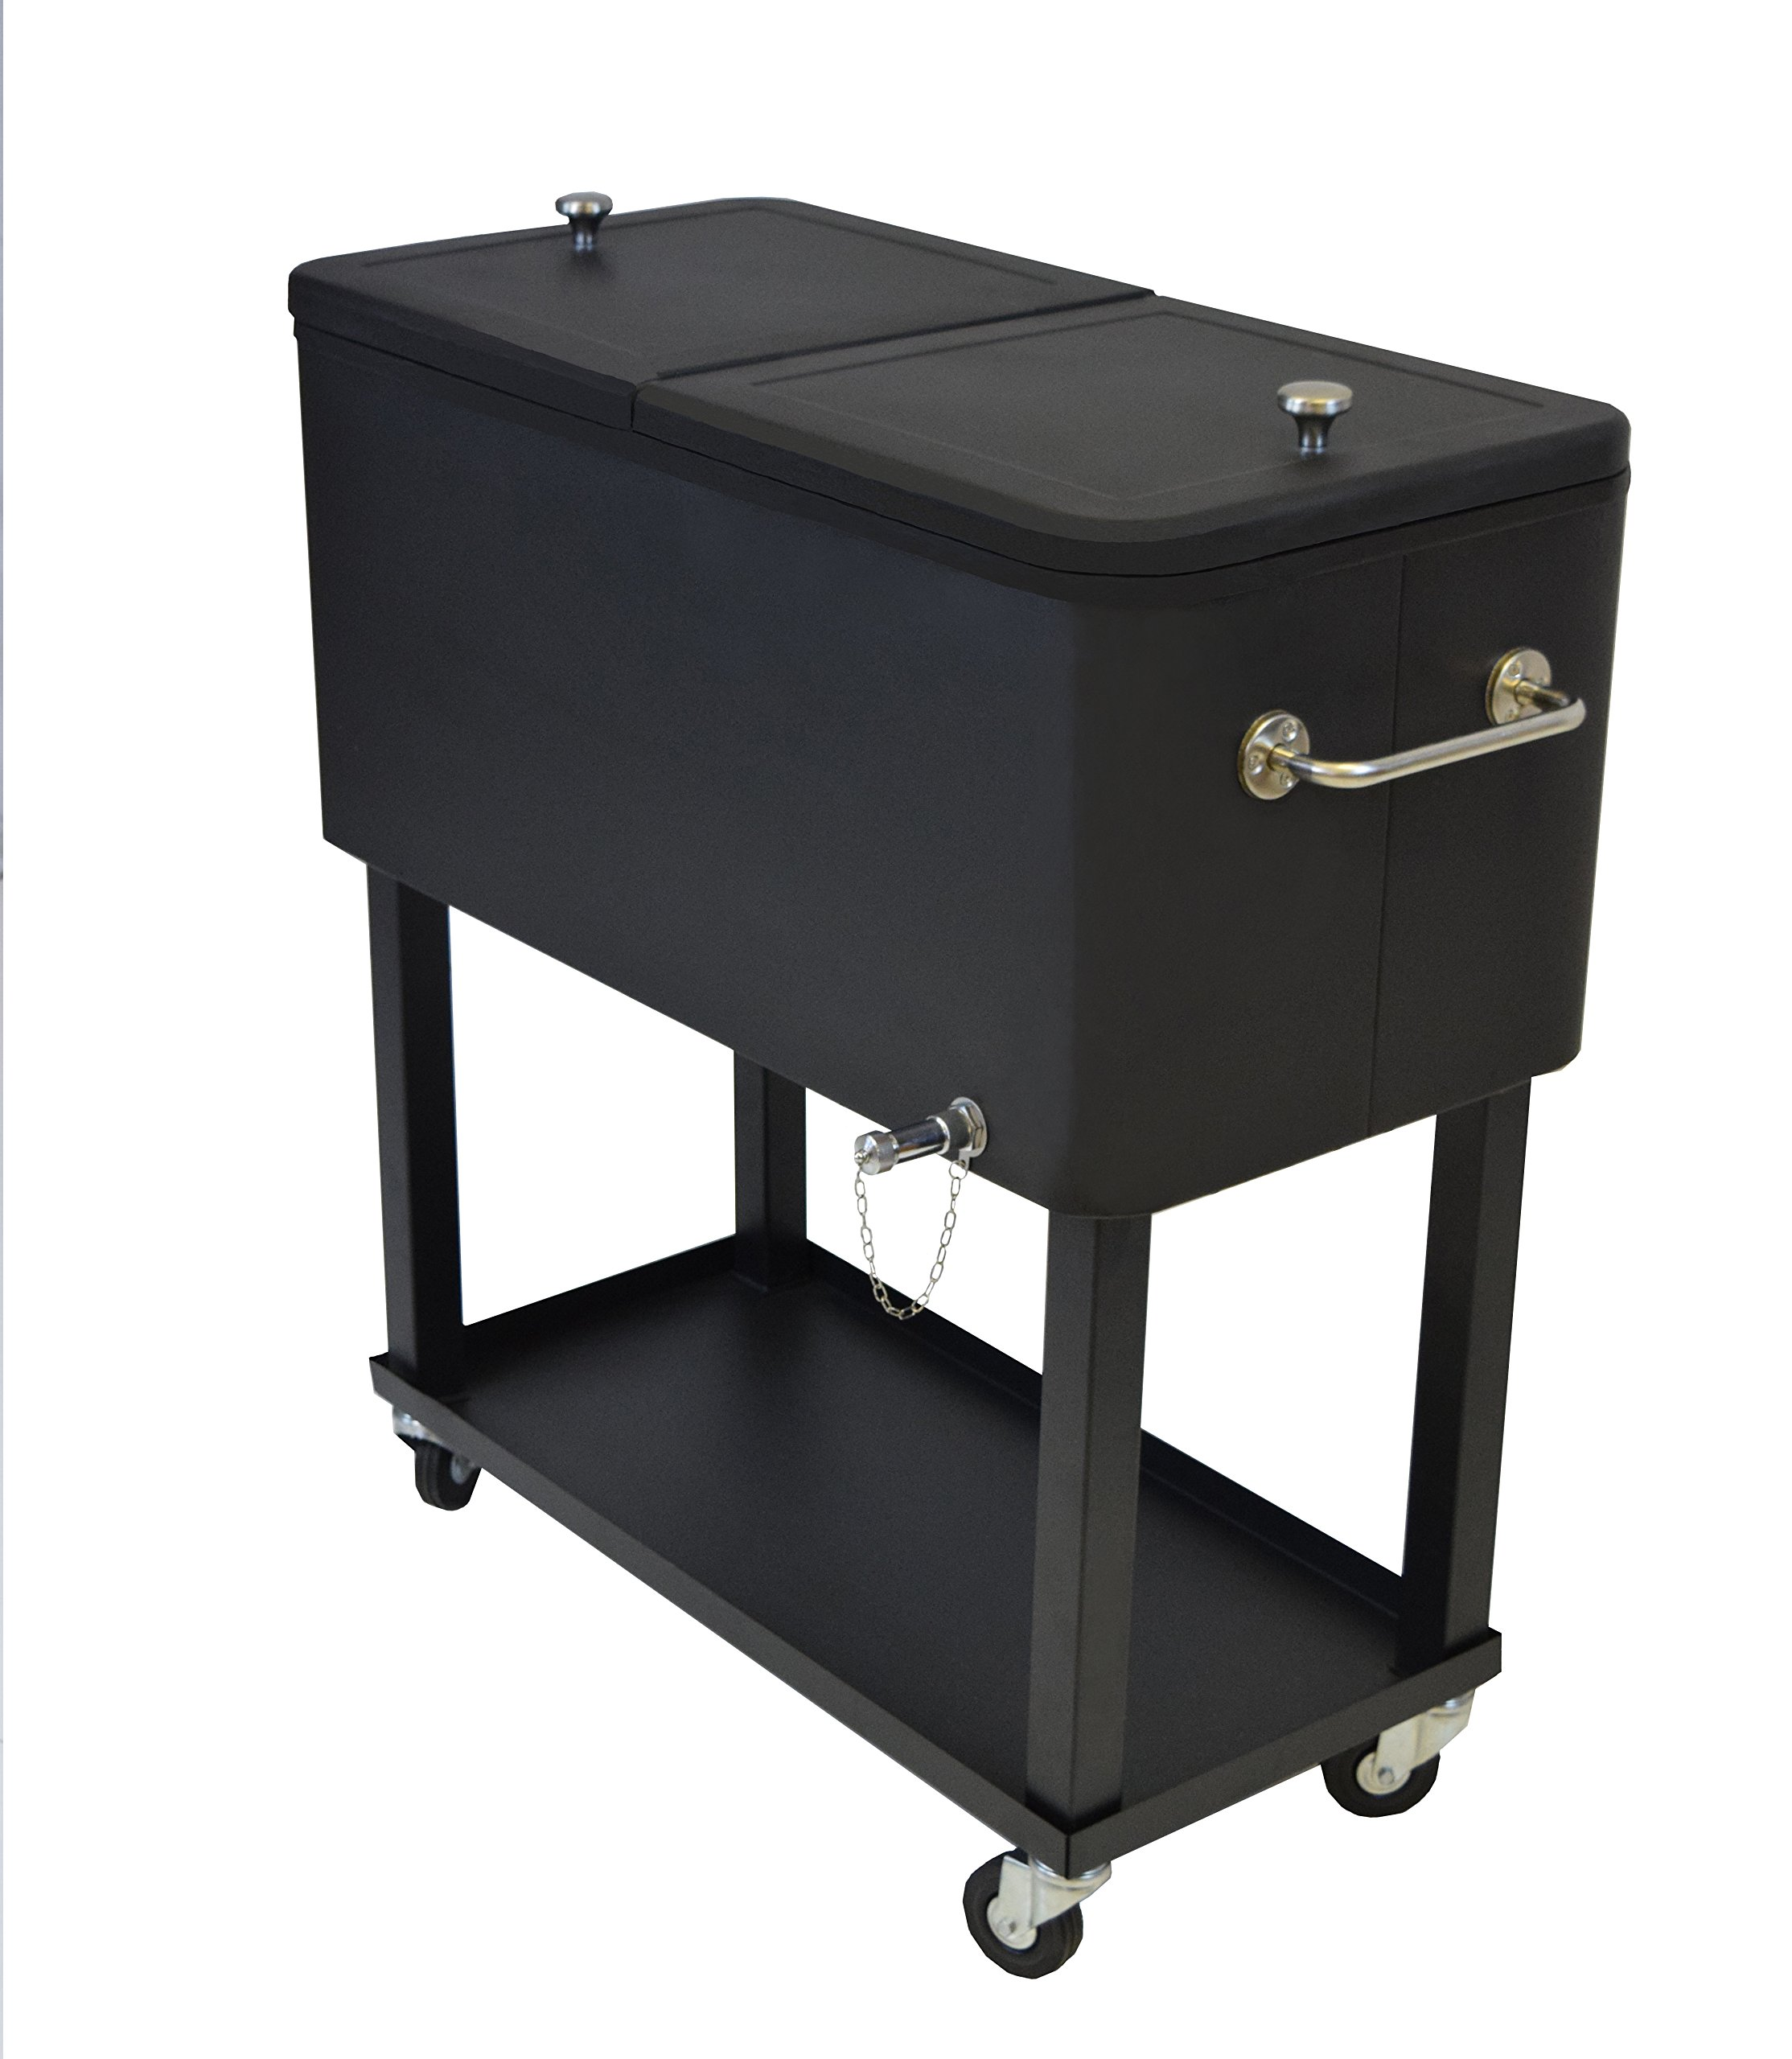 Oakland Living 90010-BK Steel Patio Cooler with Cart, 80-Quart by Oakland Living